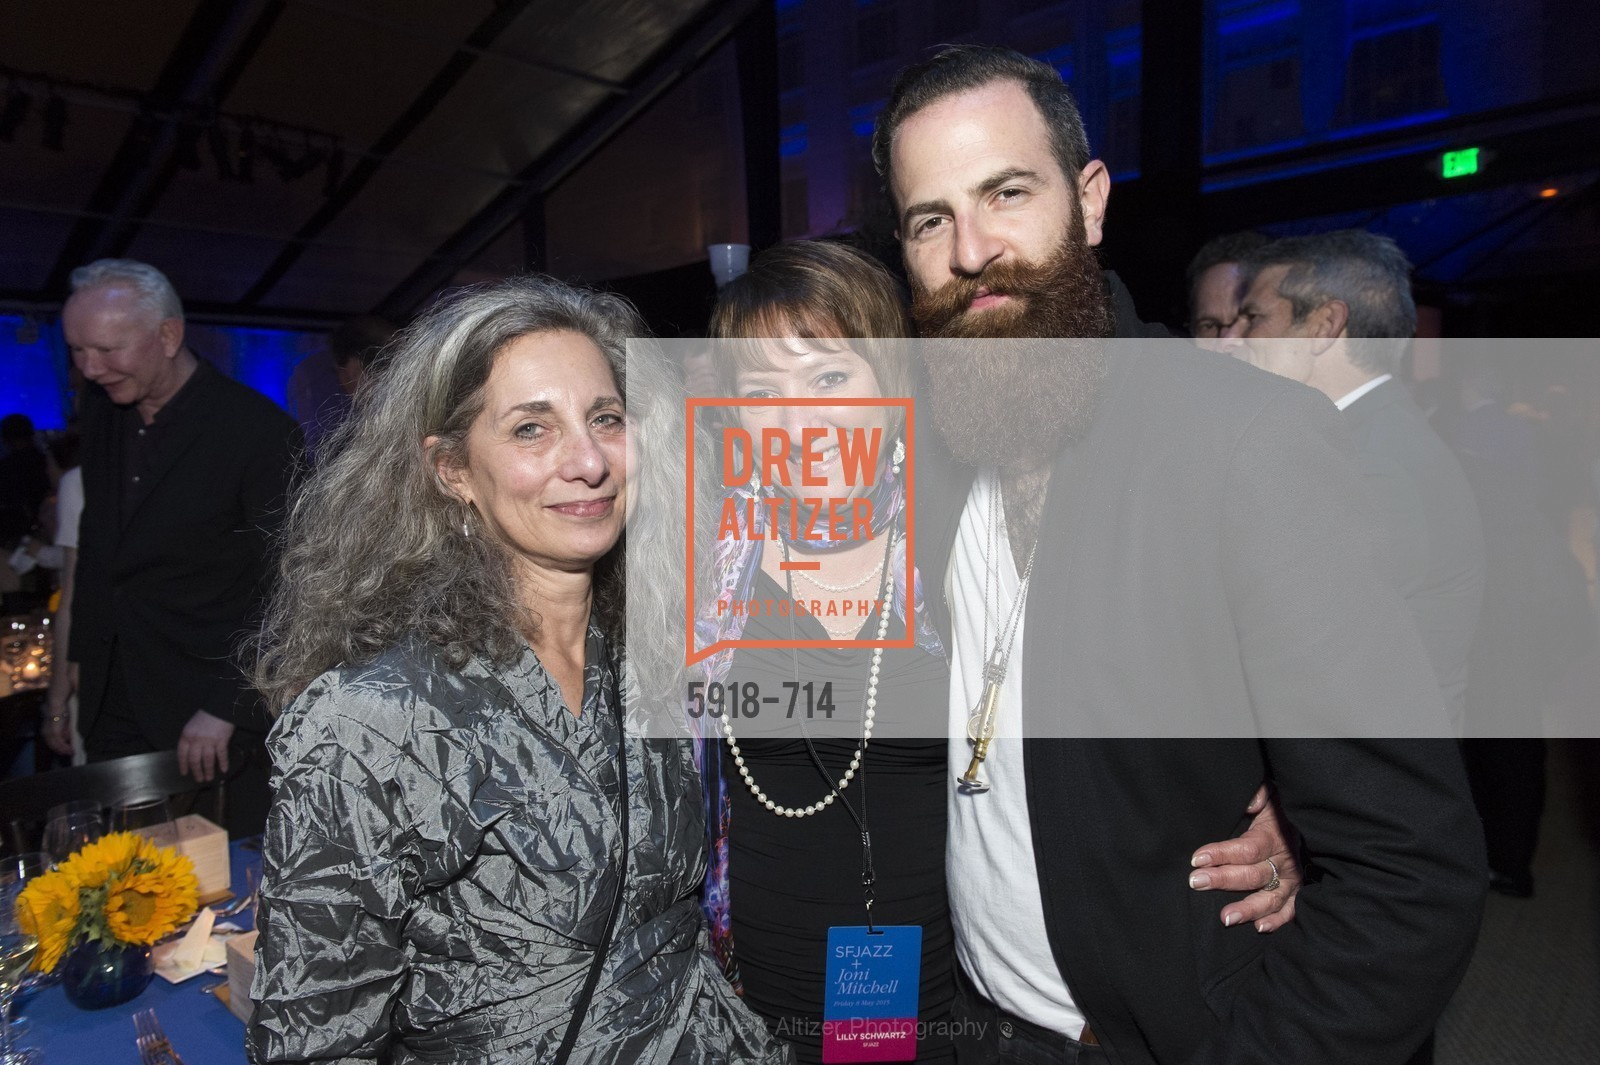 Frish Brandt, Lilly Schwartz, Avashai Cohen, SFJAZZ Gala 2015 Honors Joni Mitchell with Lifetime Achievement Award, US, May 9th, 2015,Drew Altizer, Drew Altizer Photography, full-service agency, private events, San Francisco photographer, photographer california